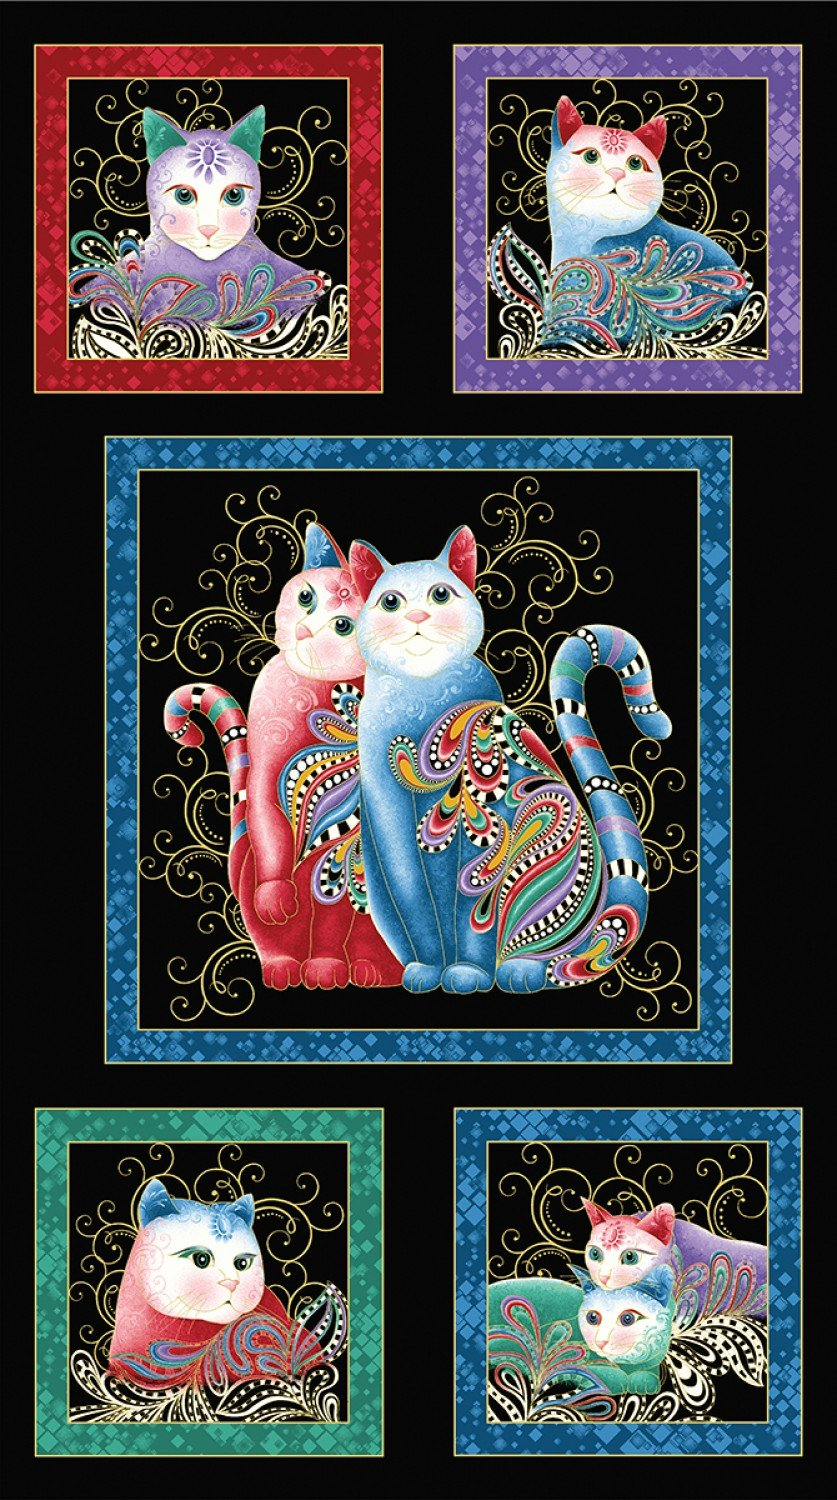 Purr Fect Together Blocks on Black - Cat-I-Tude 2 Panel